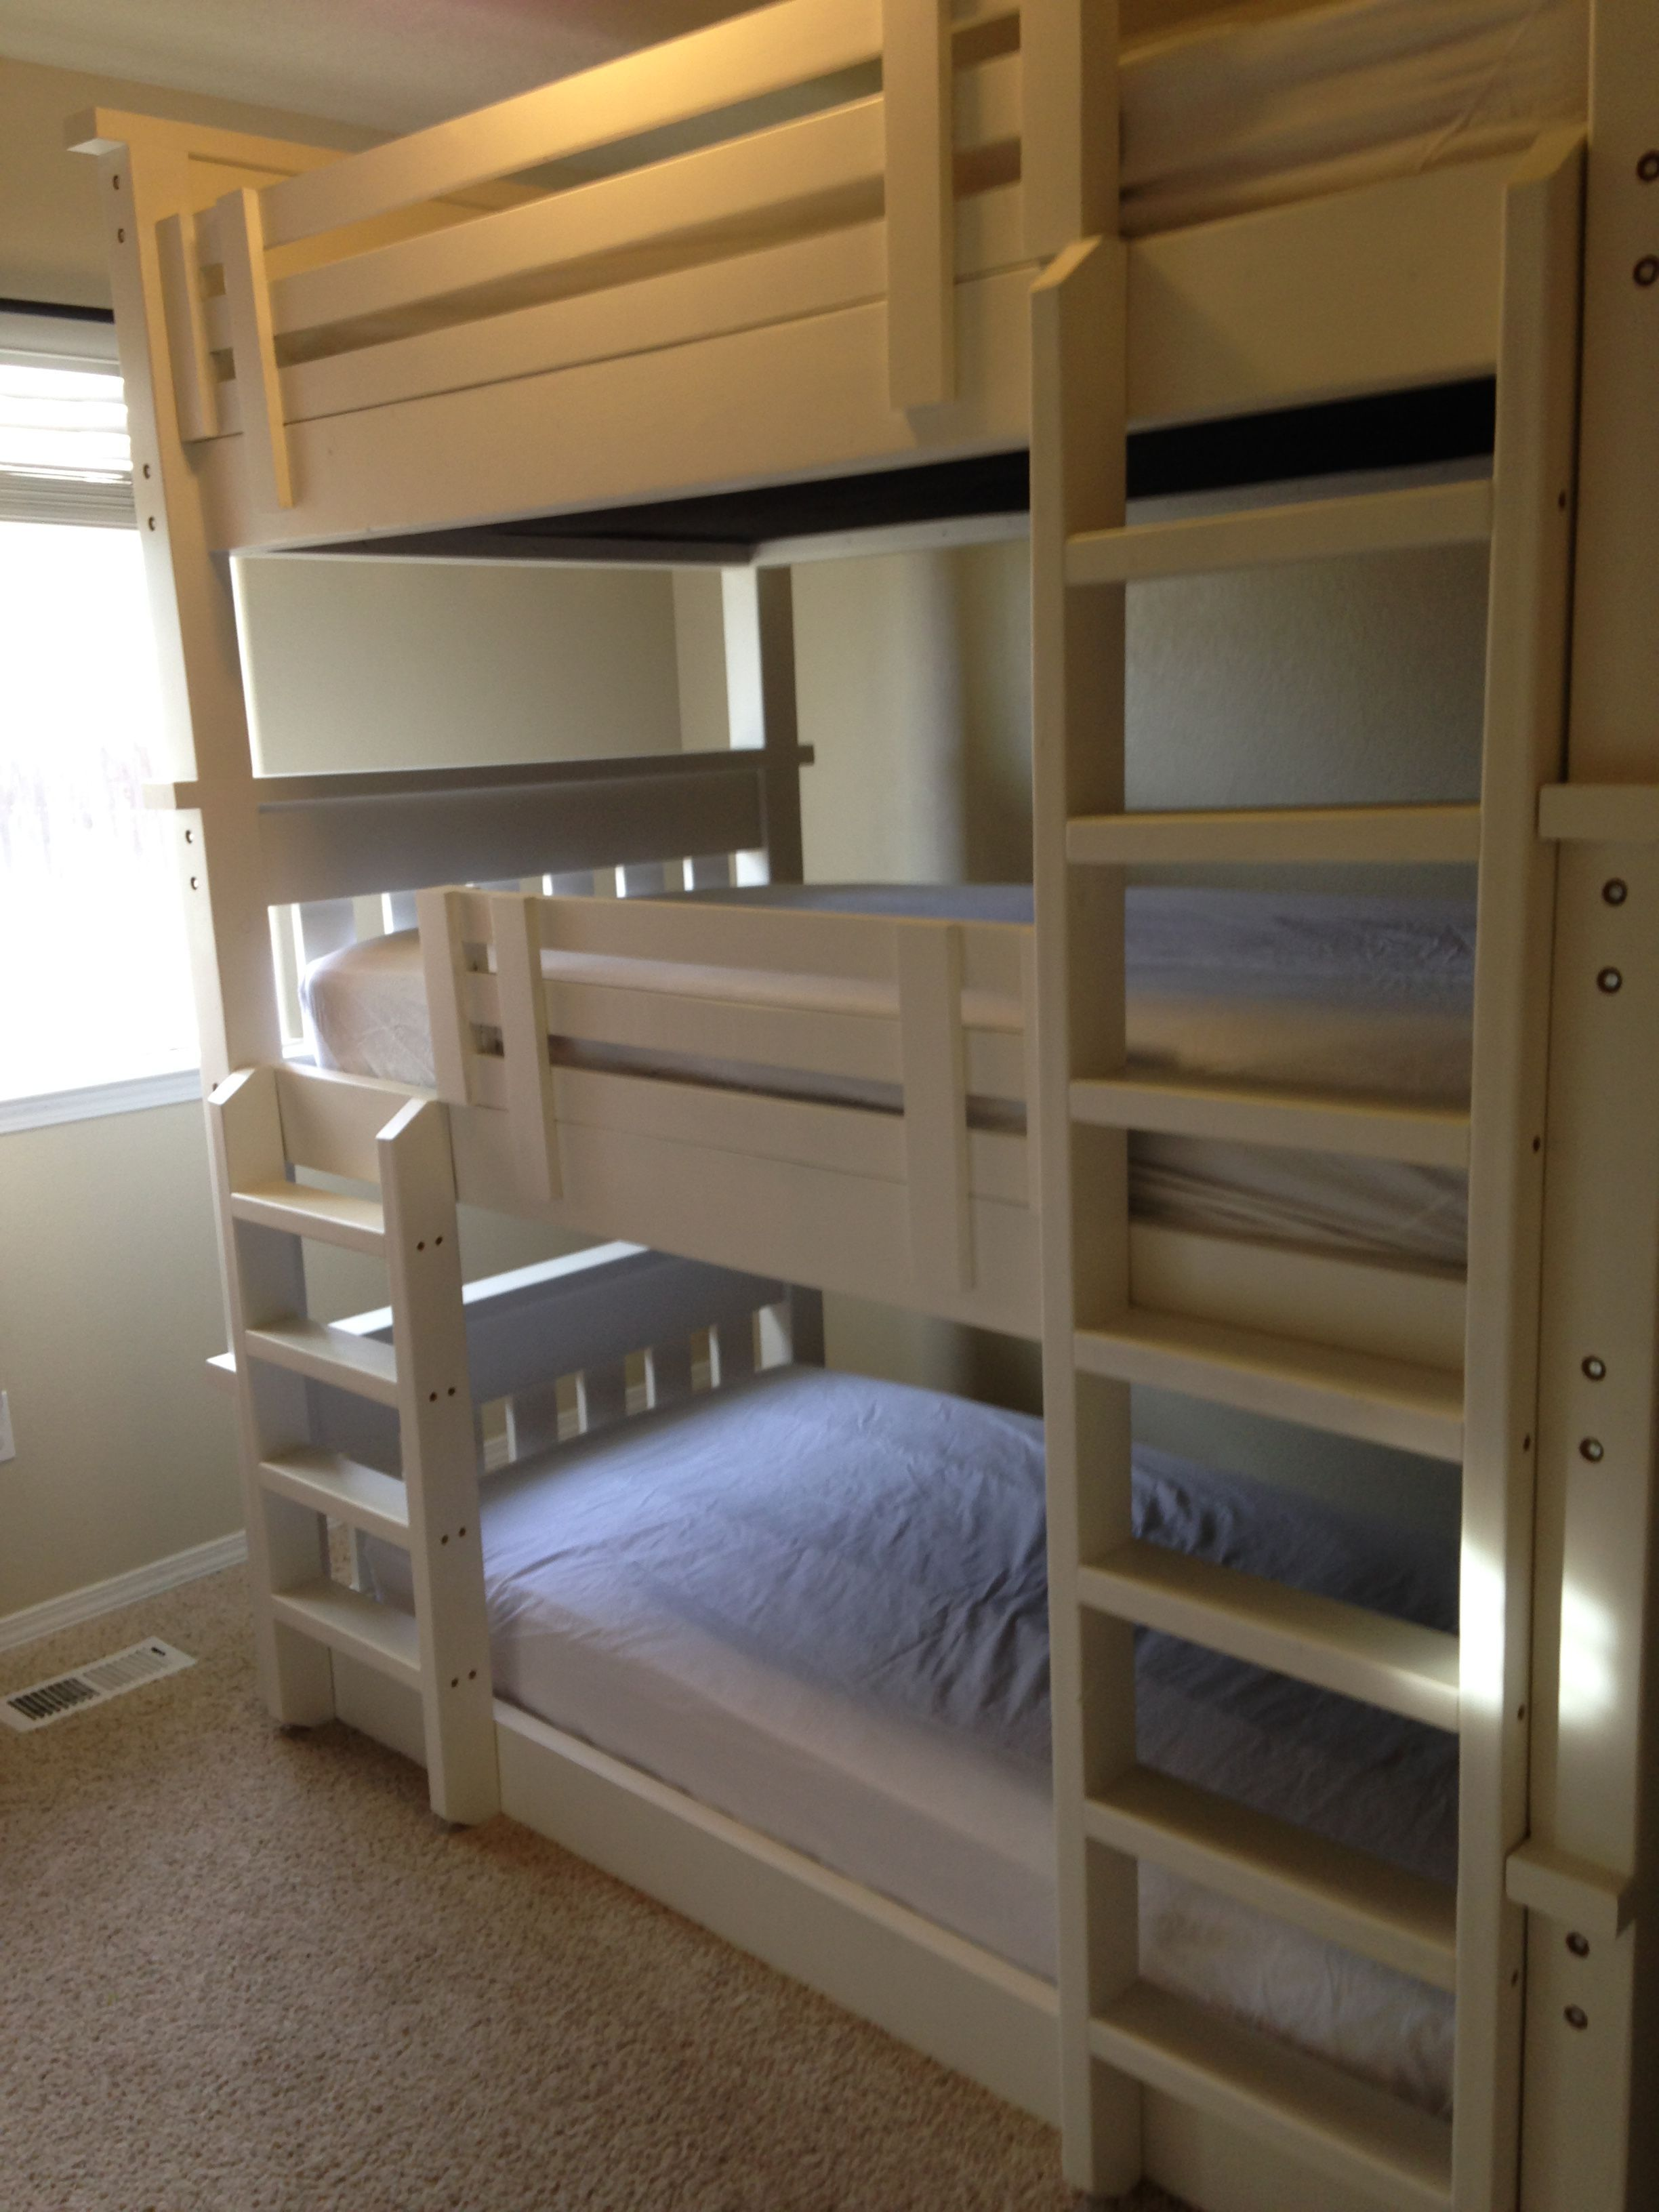 Cool Kids Bunk Beds Conserving Space And Staying Trendy With Triple Bunk Beds